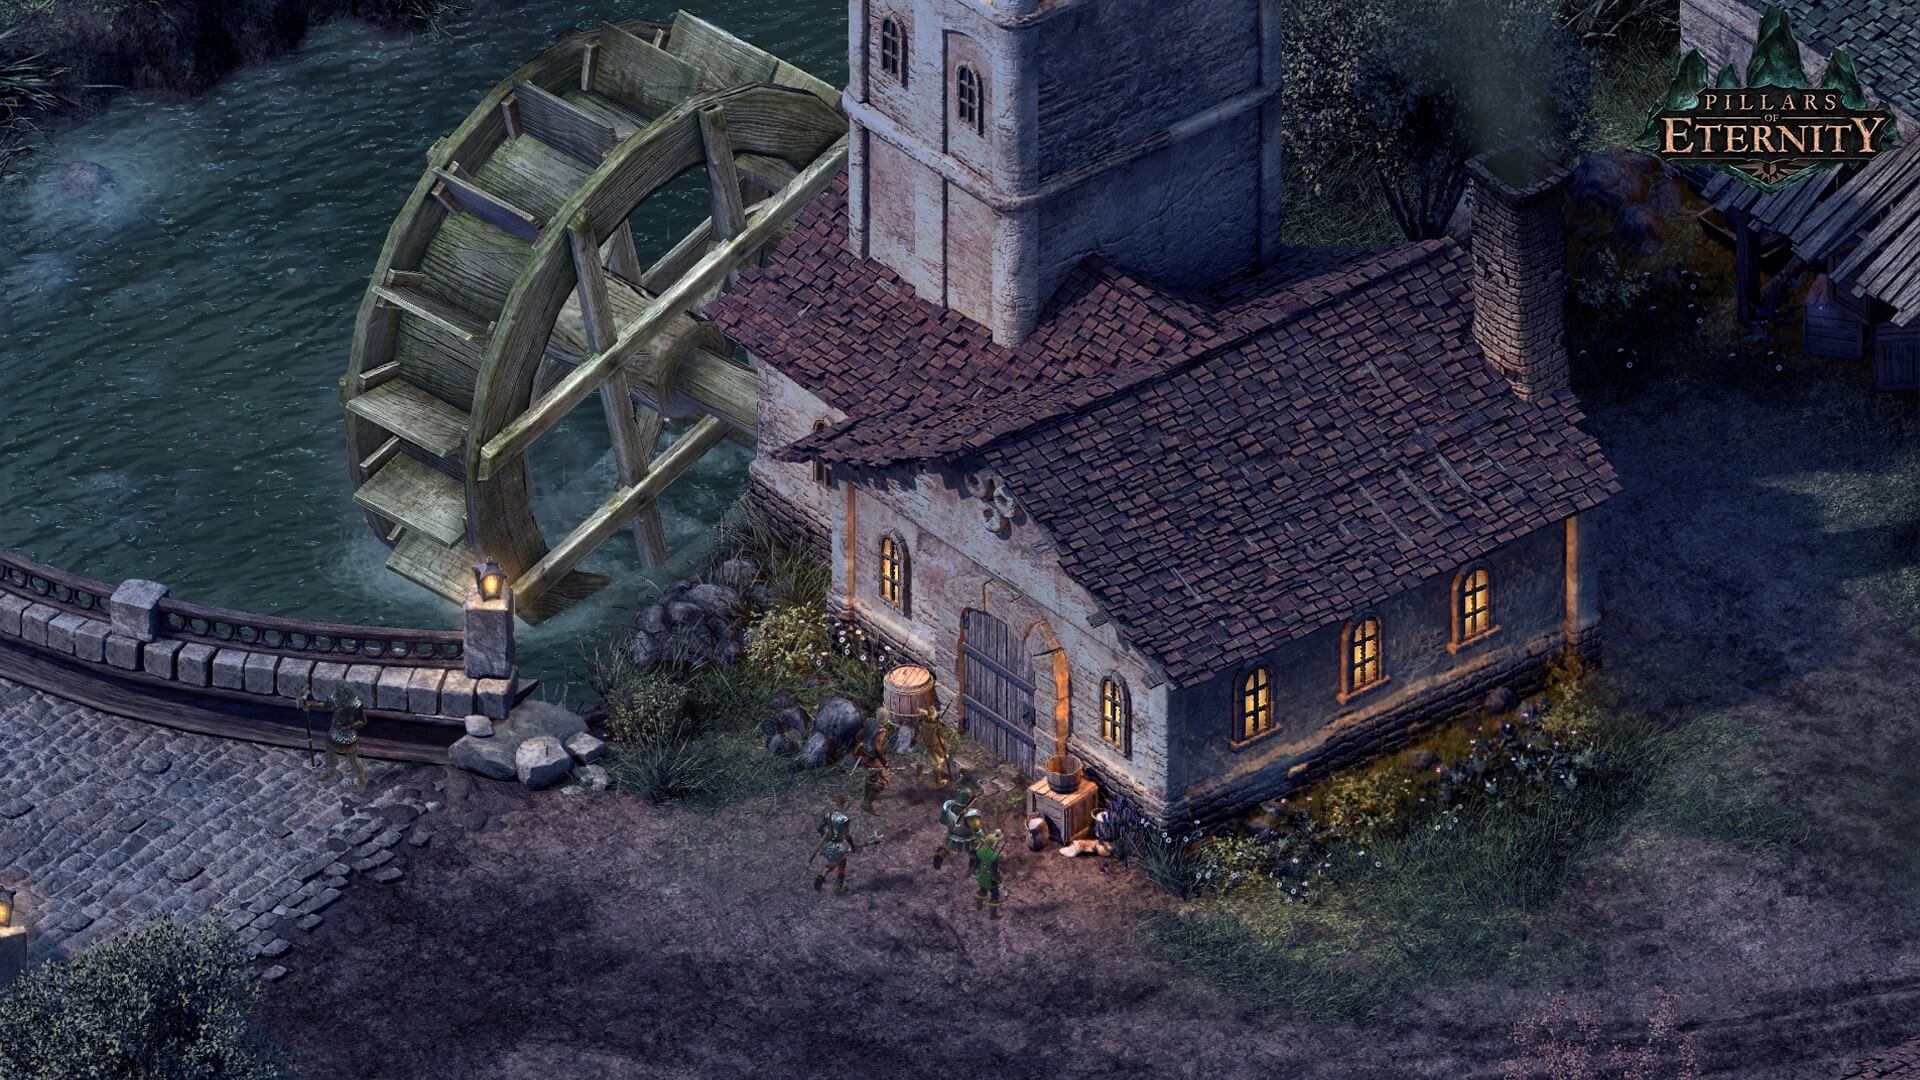 Pillars of Eternity 2 download free